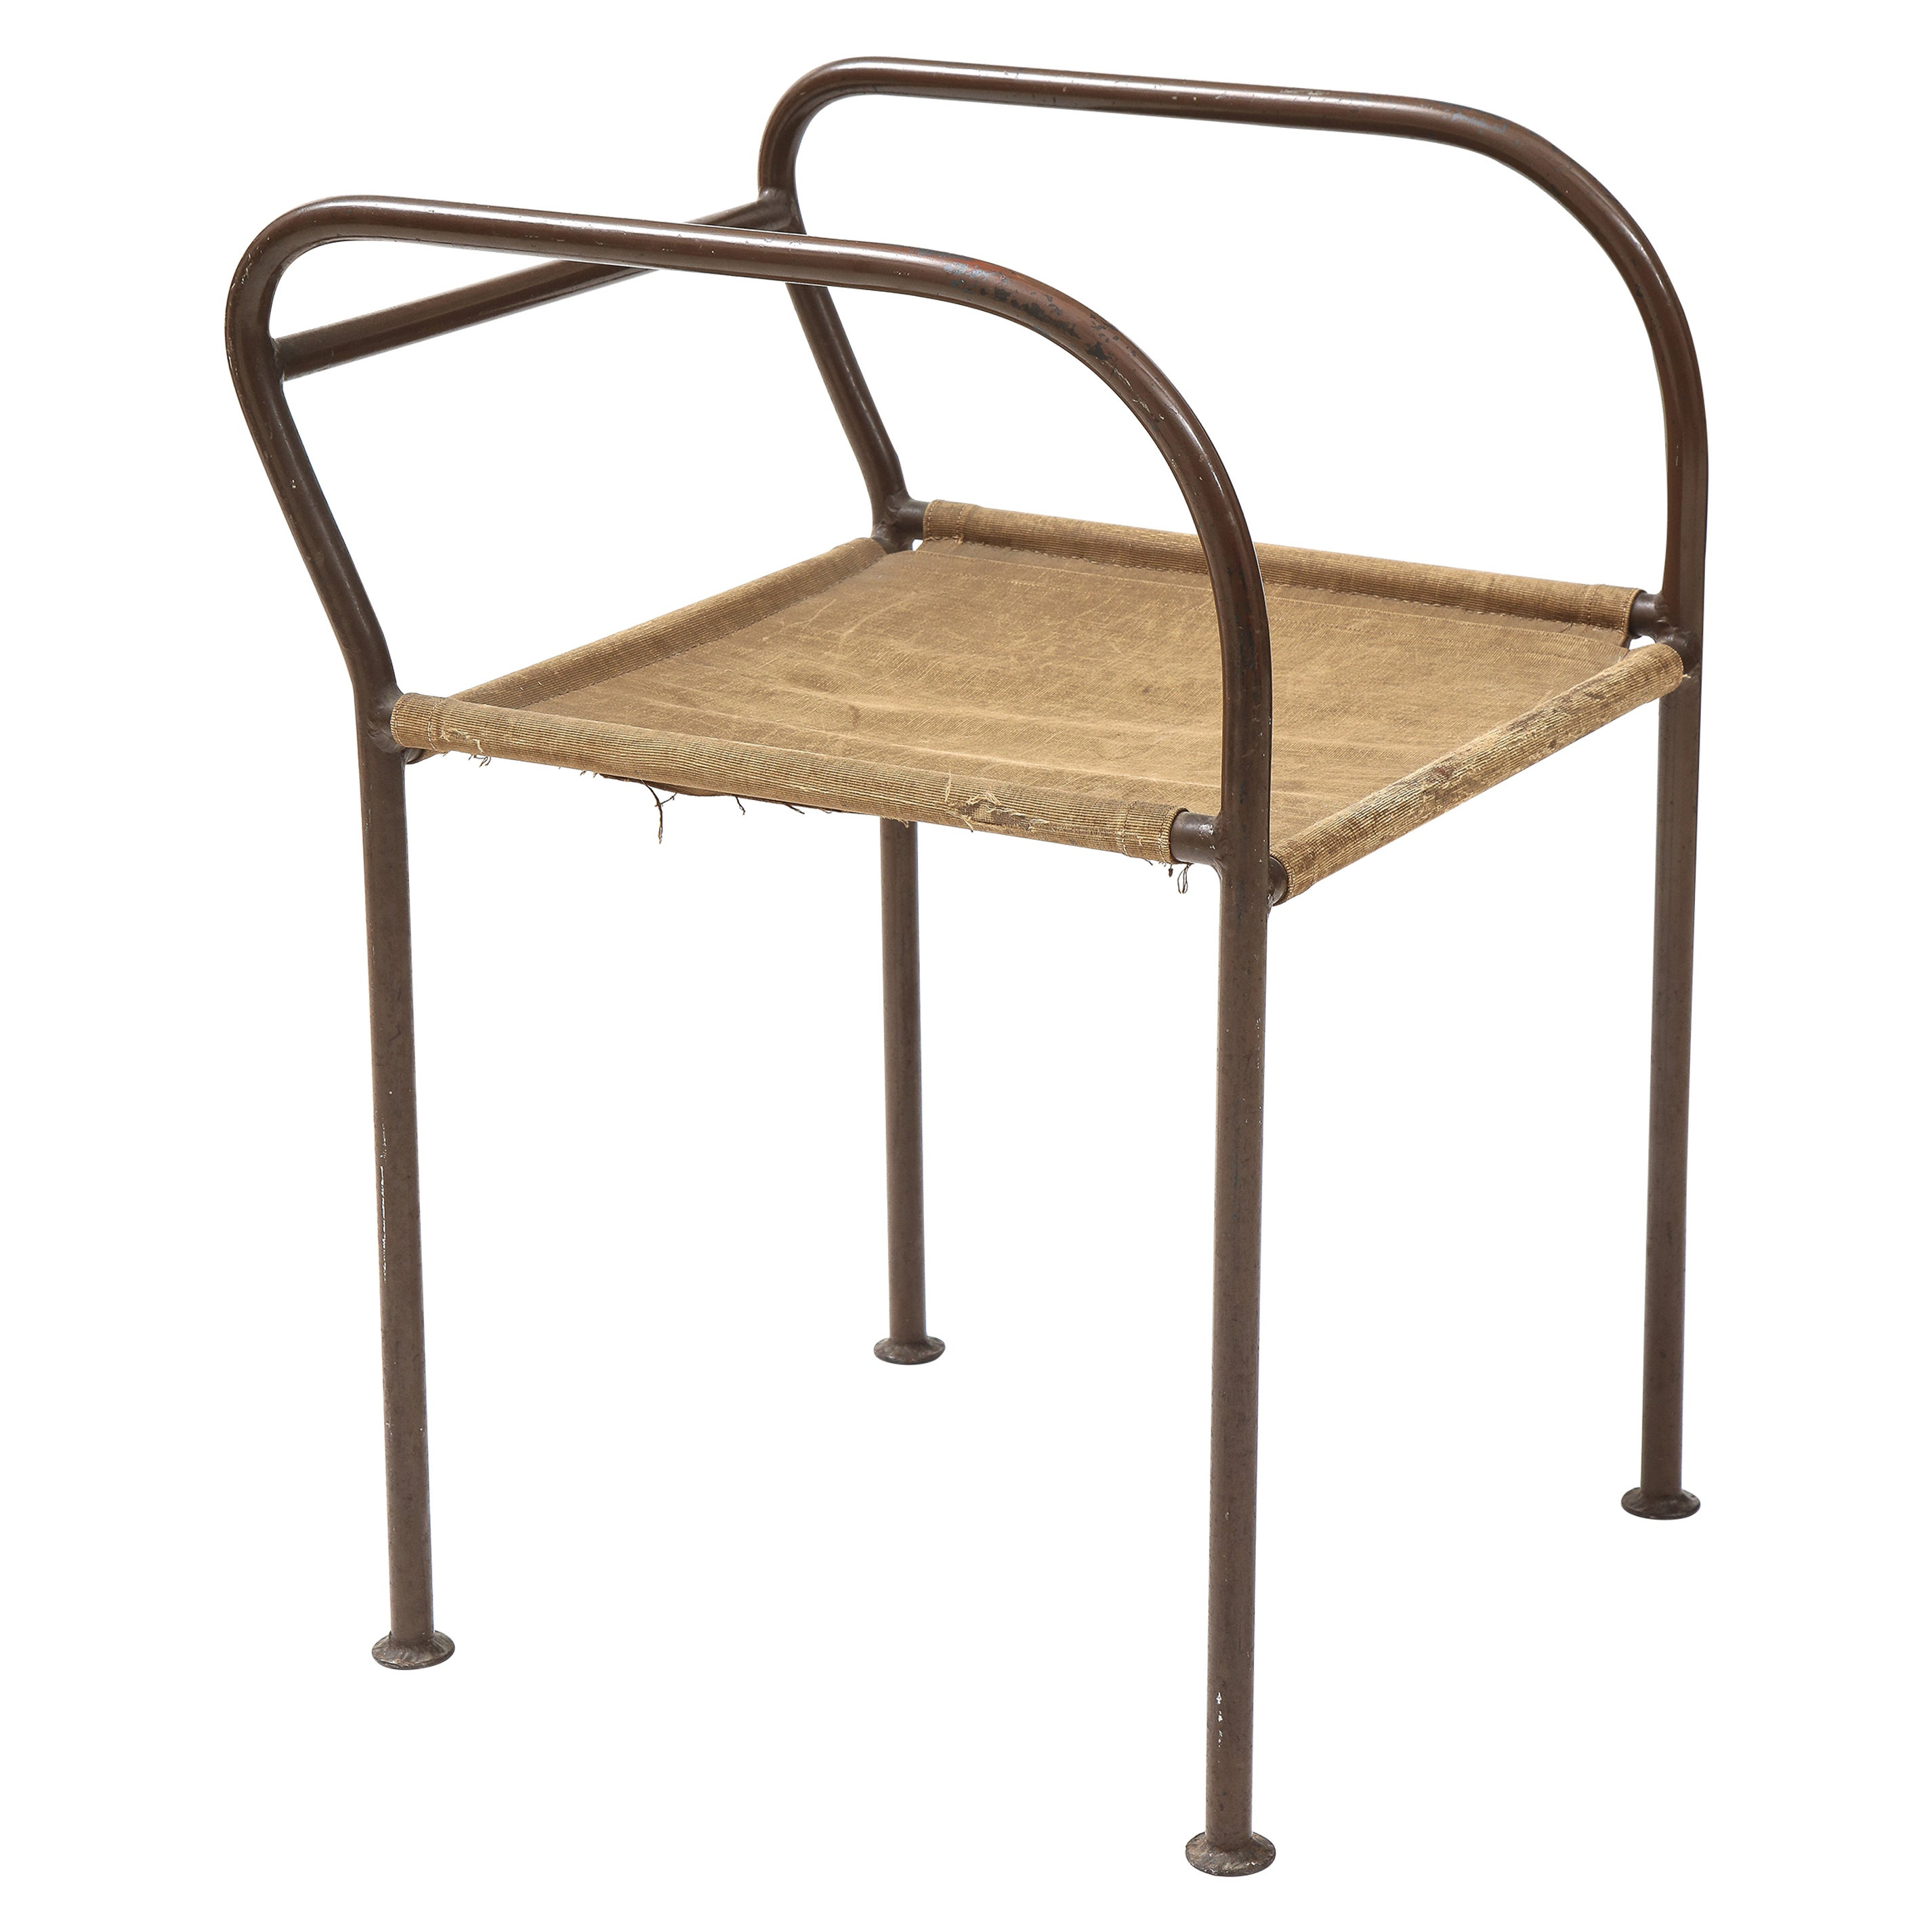 French Metal Modernist Chair / Stool, France, c. 1930